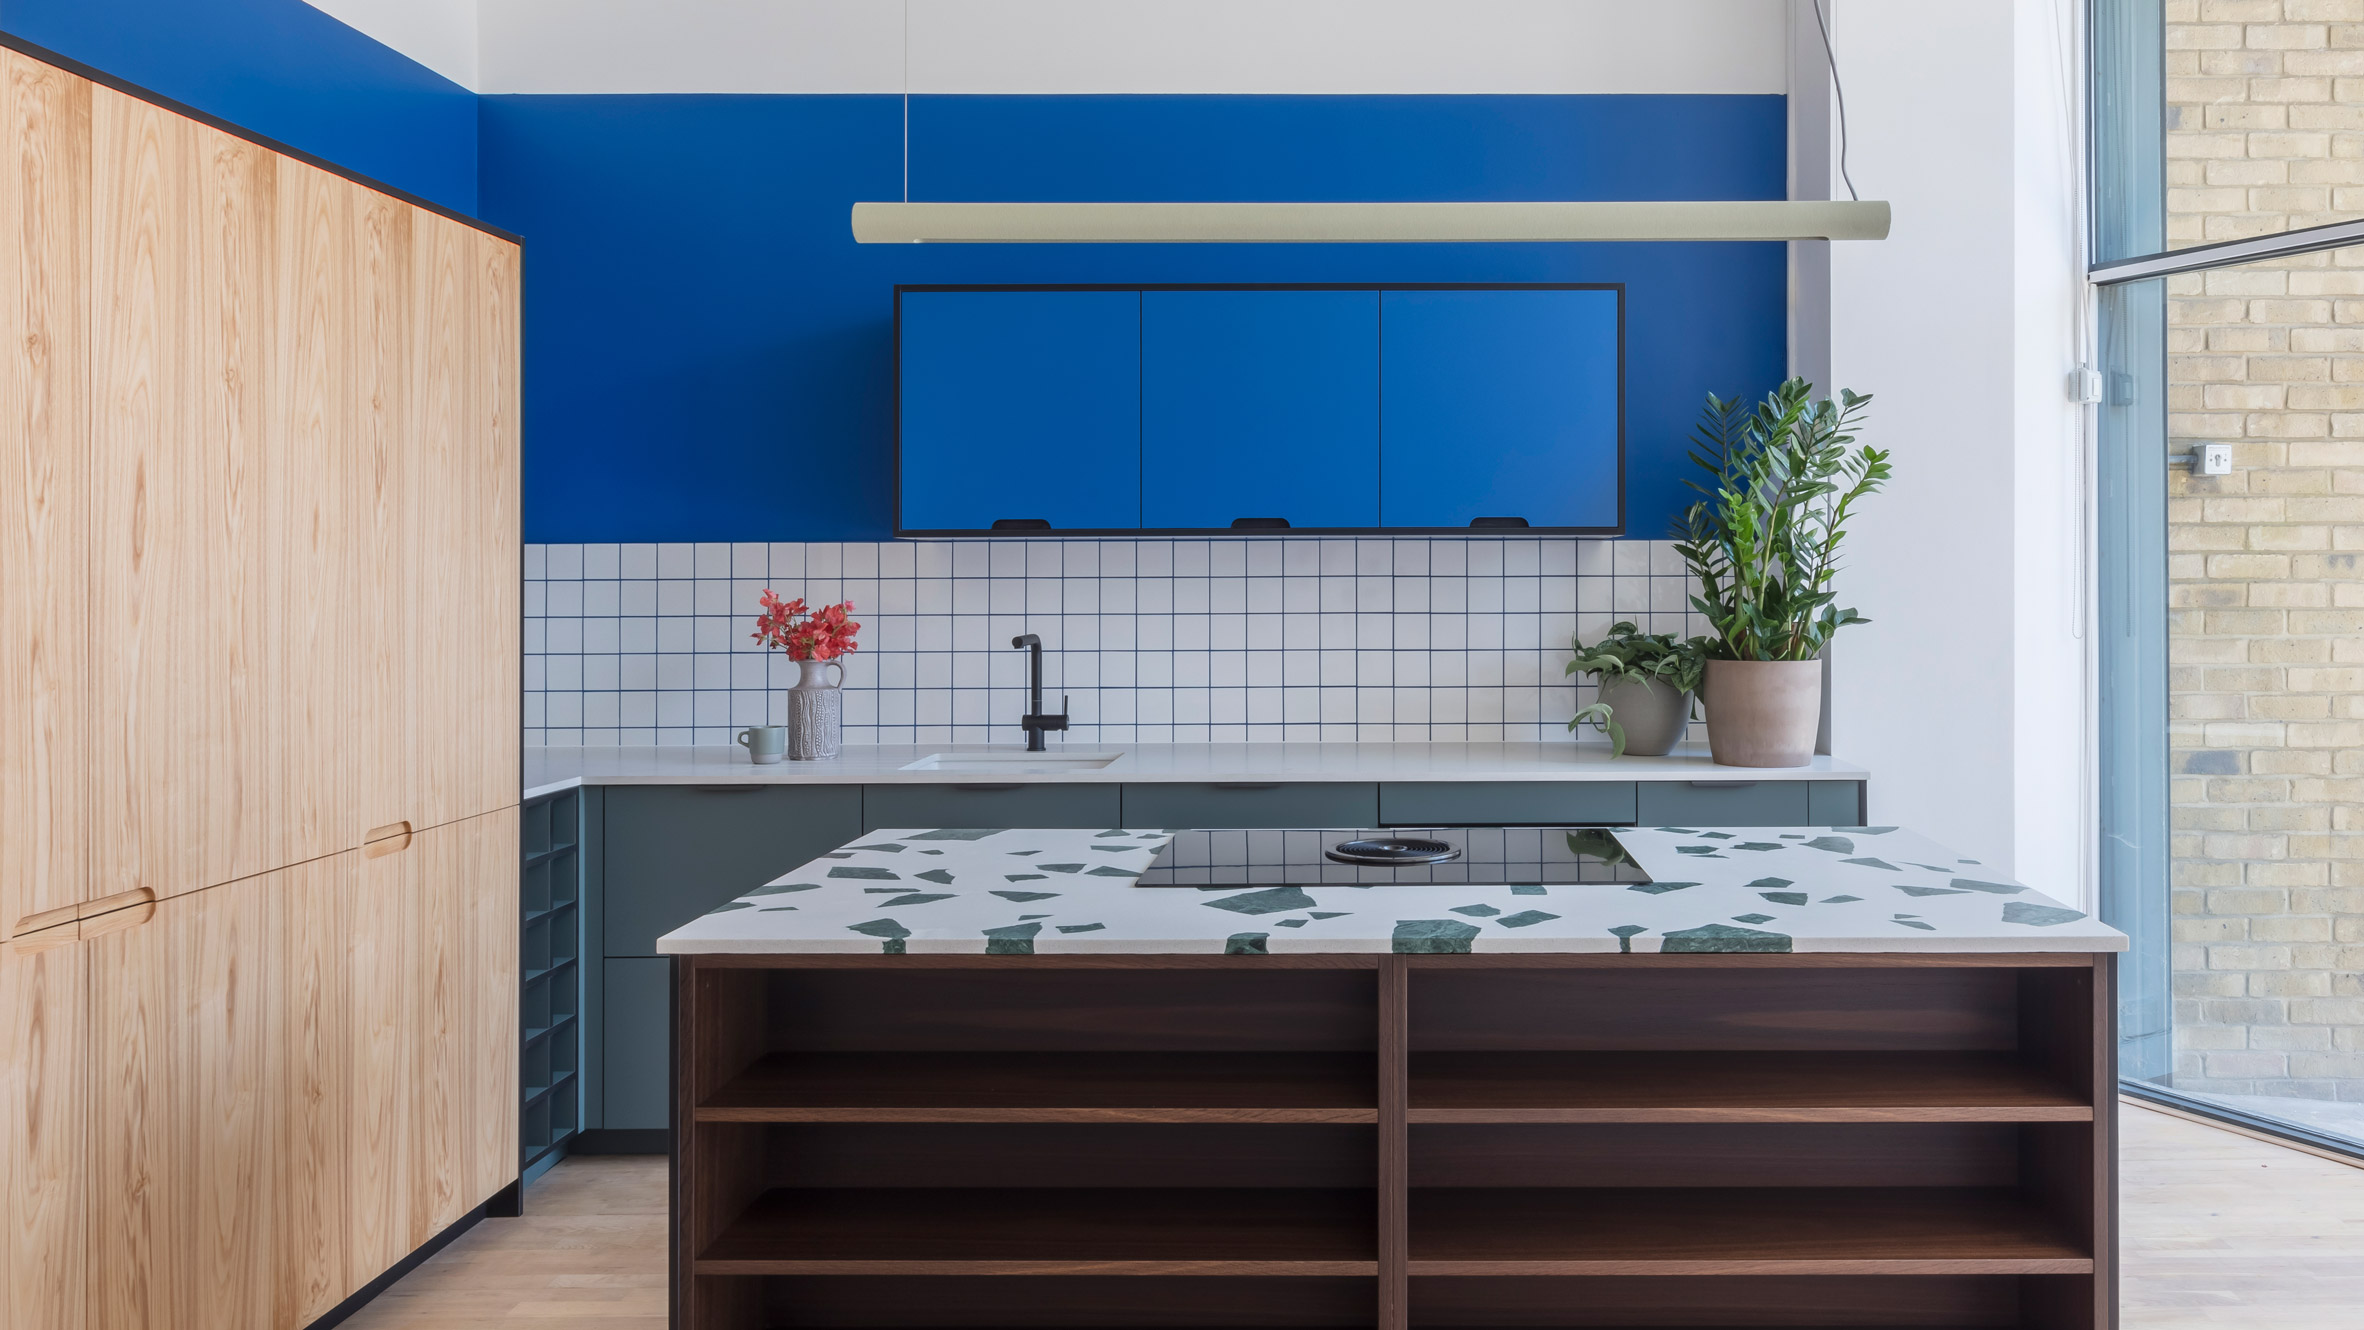 Holte Opens Hackney Design Studio For Customising Ikea Kitchens